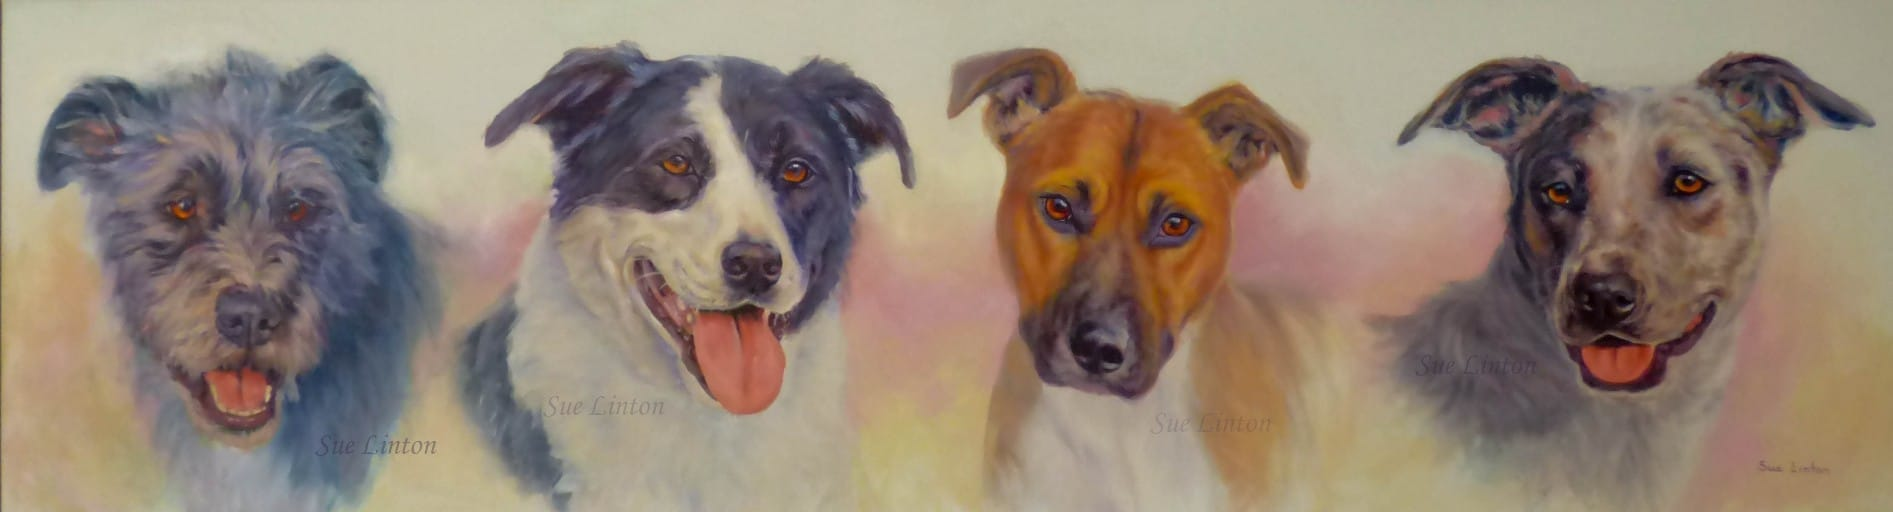 A pet portrait of 4 dogs